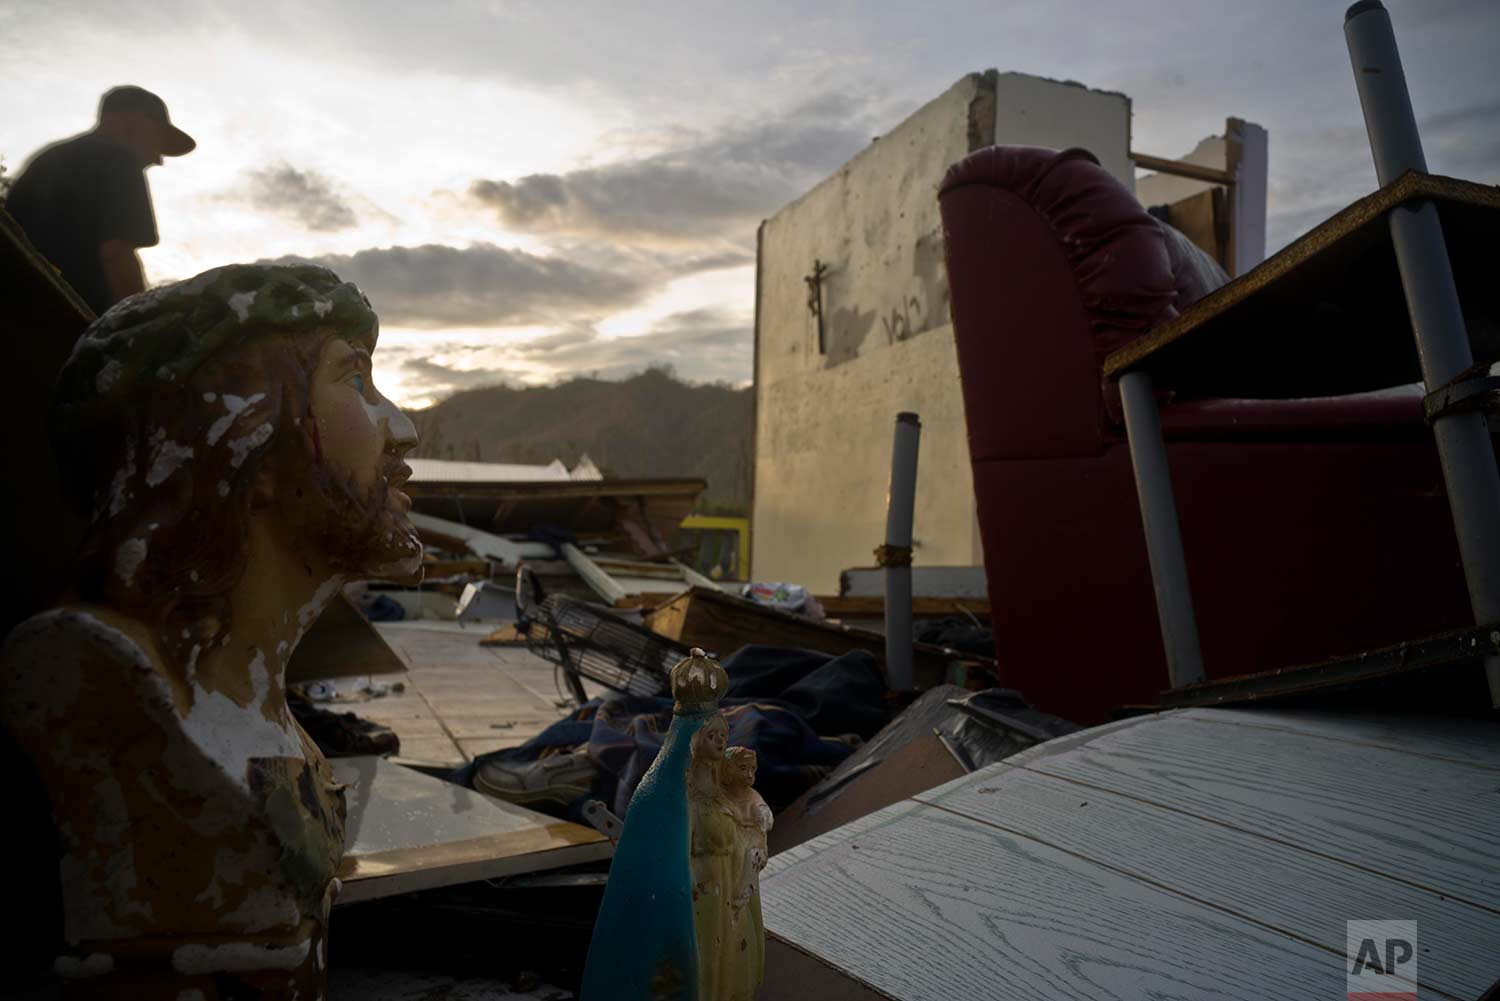 Luis Cosme walks in the remains of his house destroyed by Hurricane Maria, in Morovis, Puerto Rico, Sunday, Oct. 1, 2017.  (AP Photo/Ramon Espinosa)